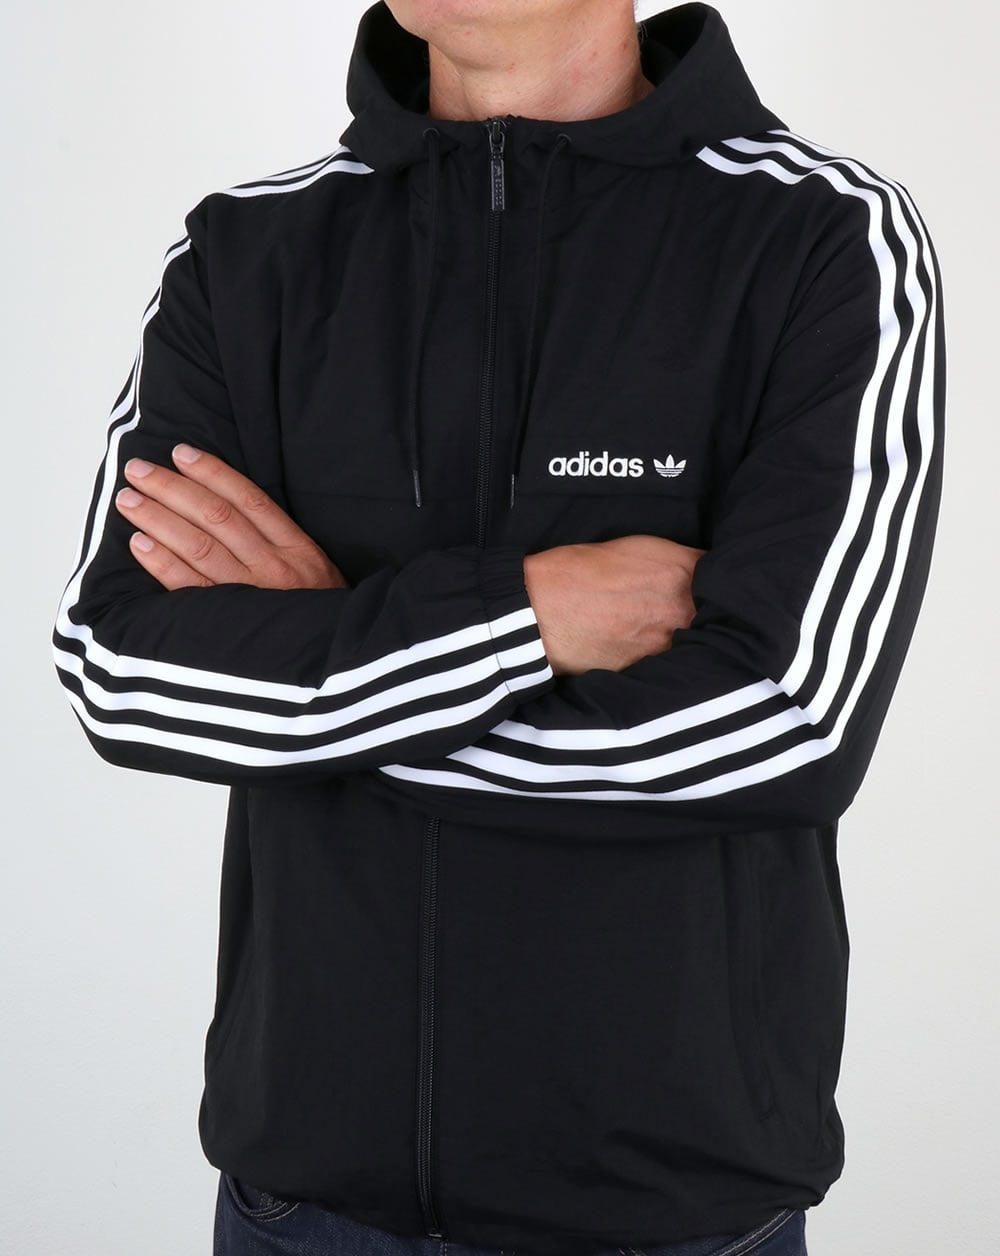 adidas Originals Mens 3 Stripes Full Zip Hoodie